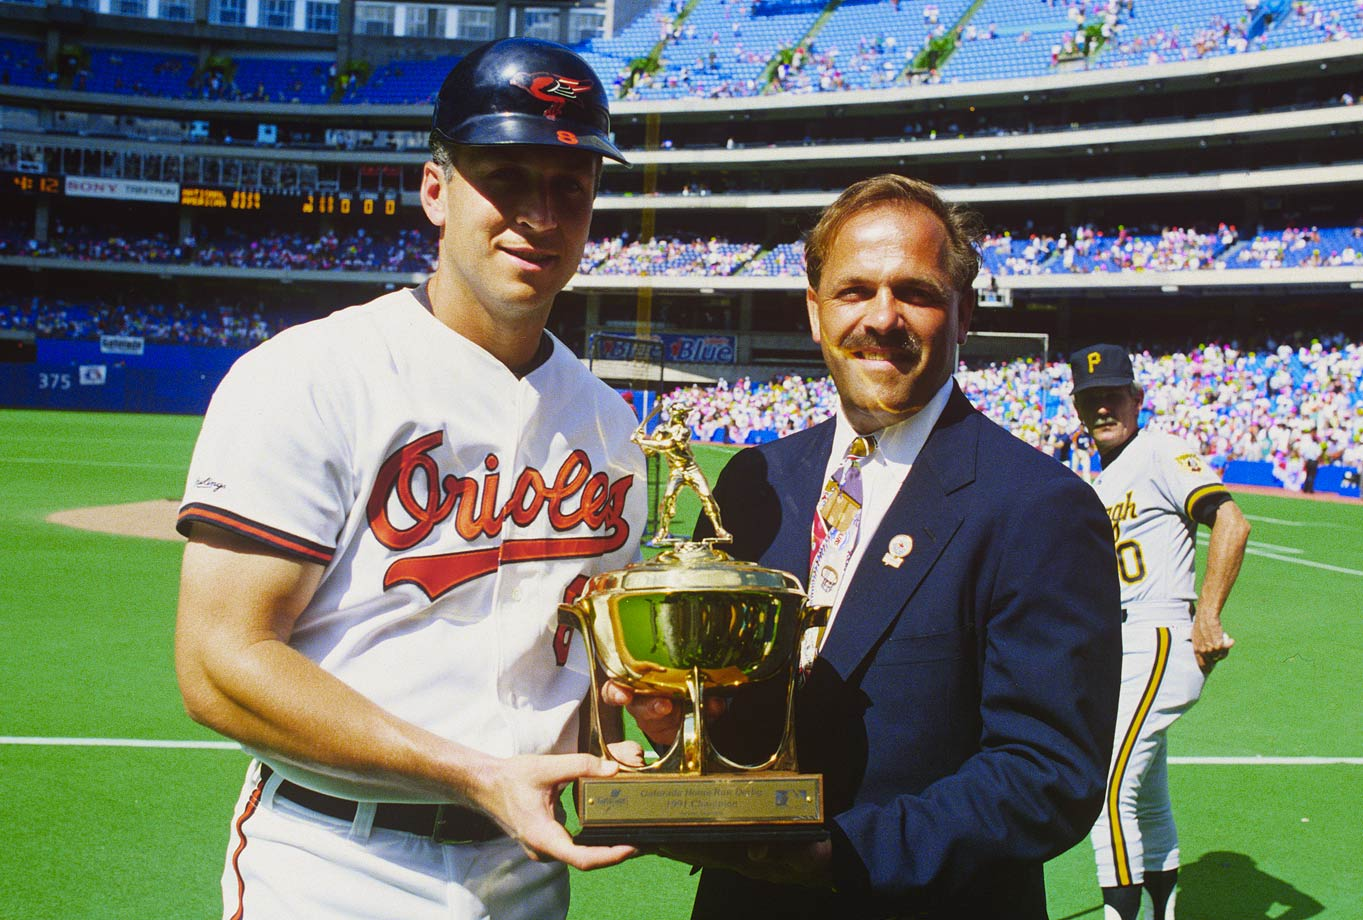 Cal Ripken Jr. blew away the field with 12 home runs at the Skydome and then homered in the All-Star Game as well to take home MVP honors. He is one of only three players to win the Derby and homer in the Game, with Frank Thomas (1995) and Garret Anderson (2003) being the others.